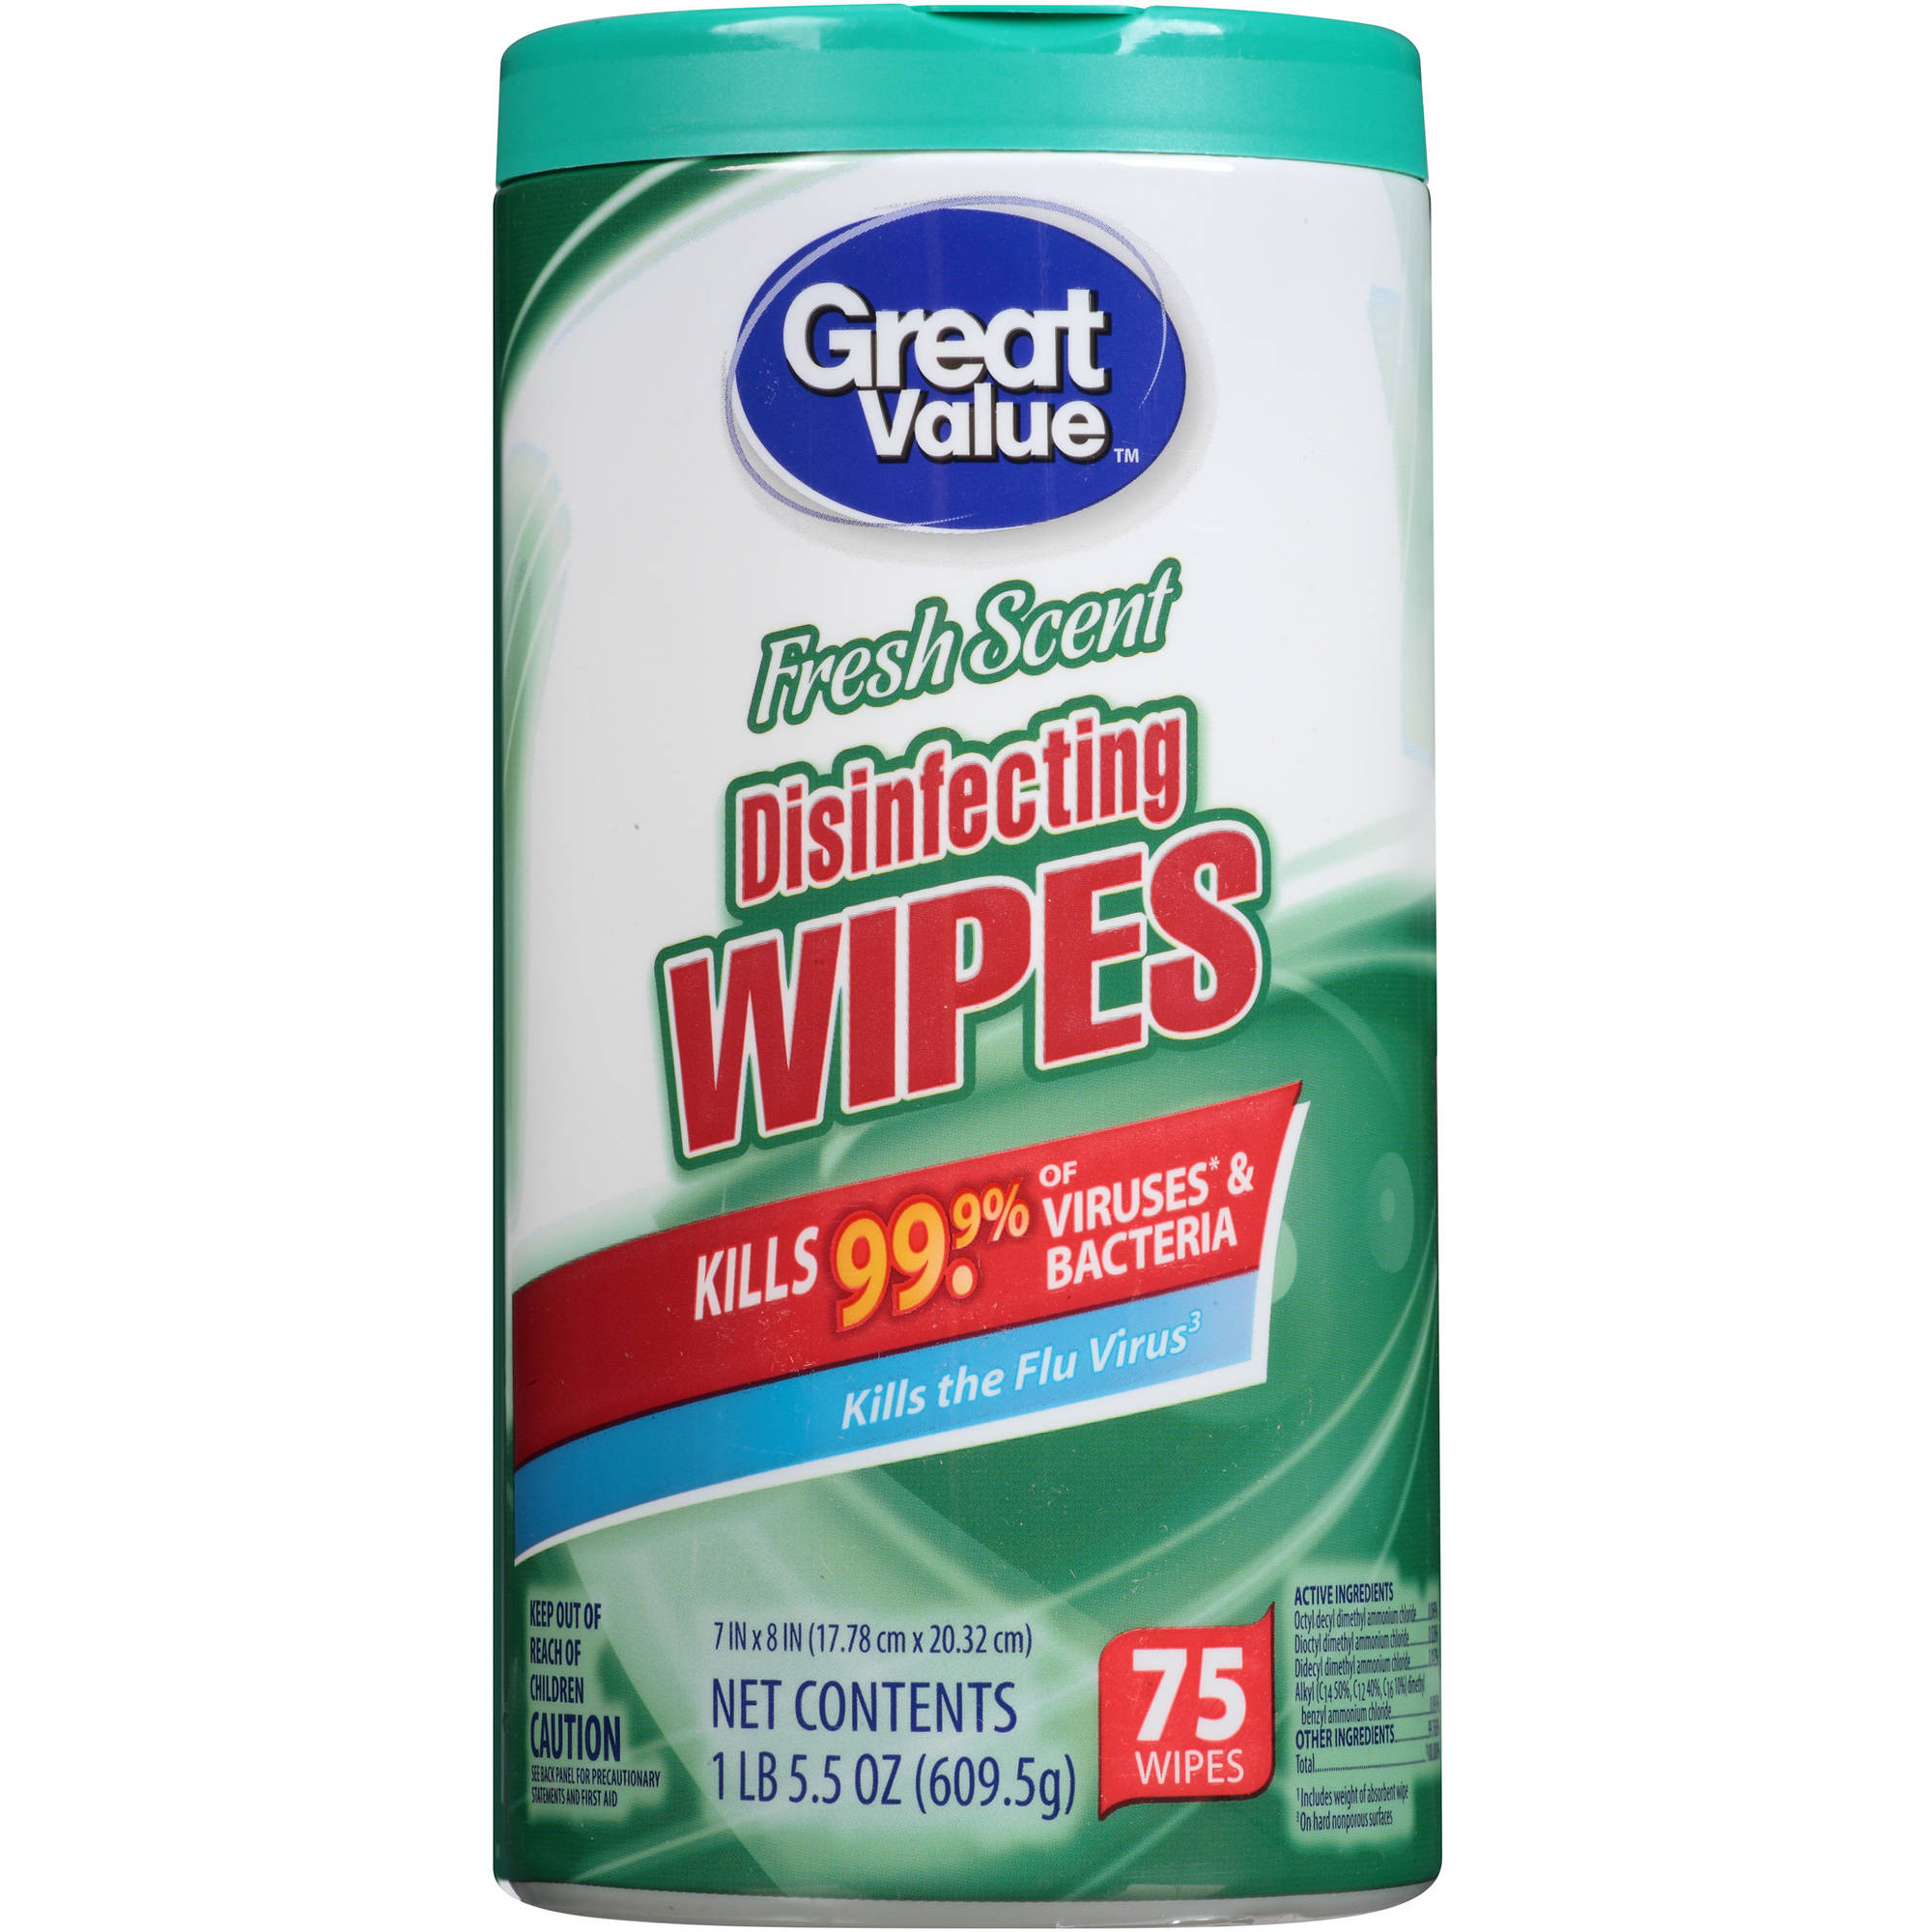 Great Value Fresh Scent Disinfecting Wipes, 75ct